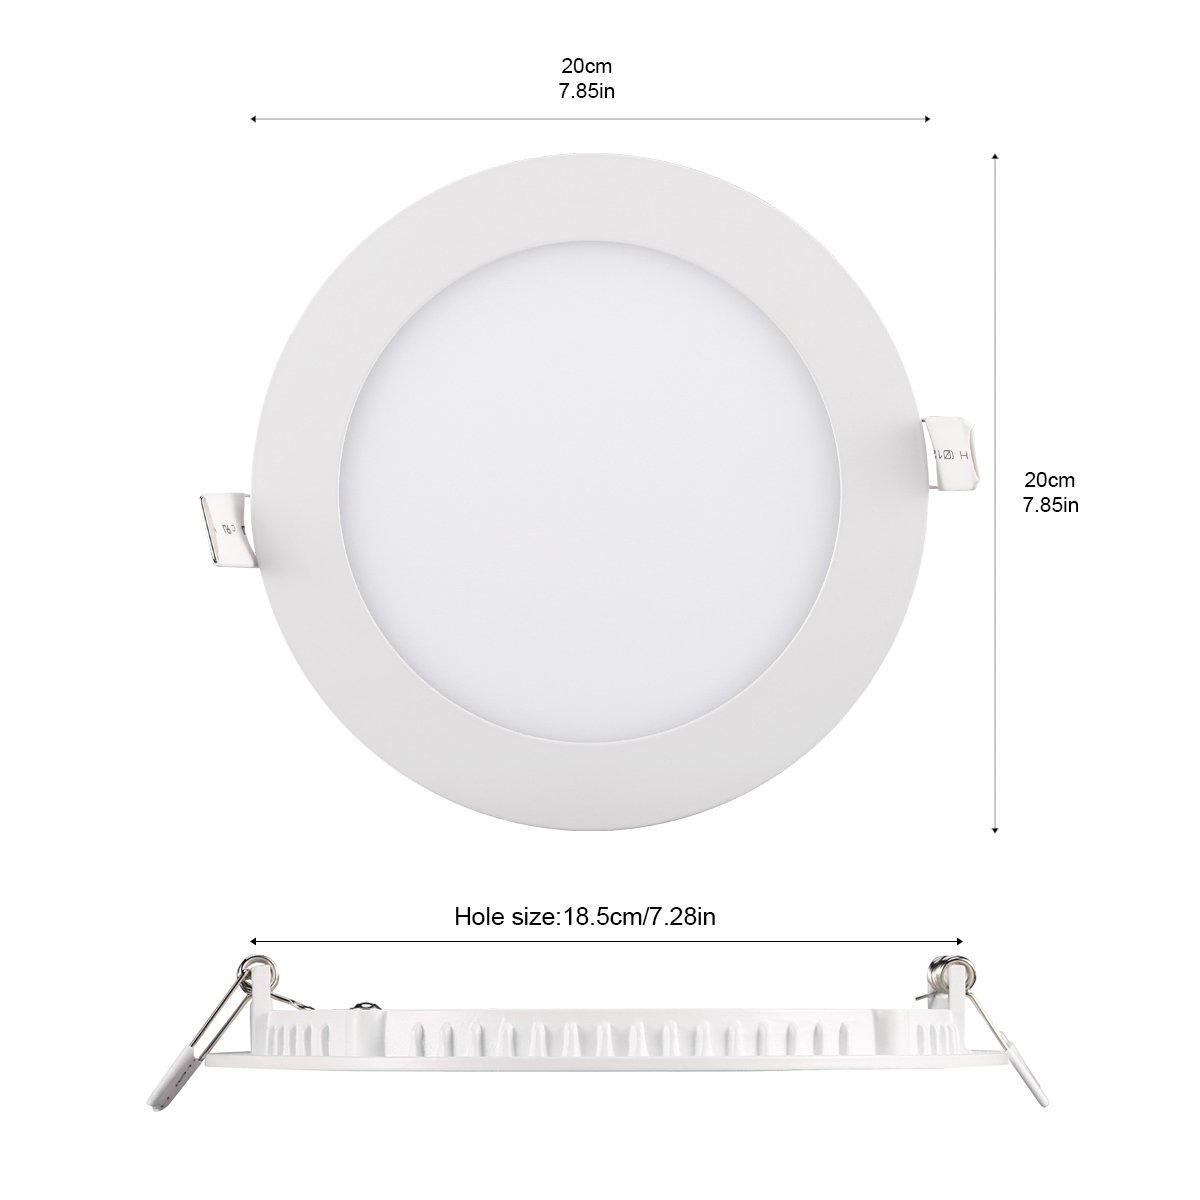 B-right Pack of 5 Units 9W 5-inch Dimmable Round LED Panel Light 720lm Ultra-Thin 4000K Daylight White LED Recessed Ceiling Lights for Home Office Commercial Lighting